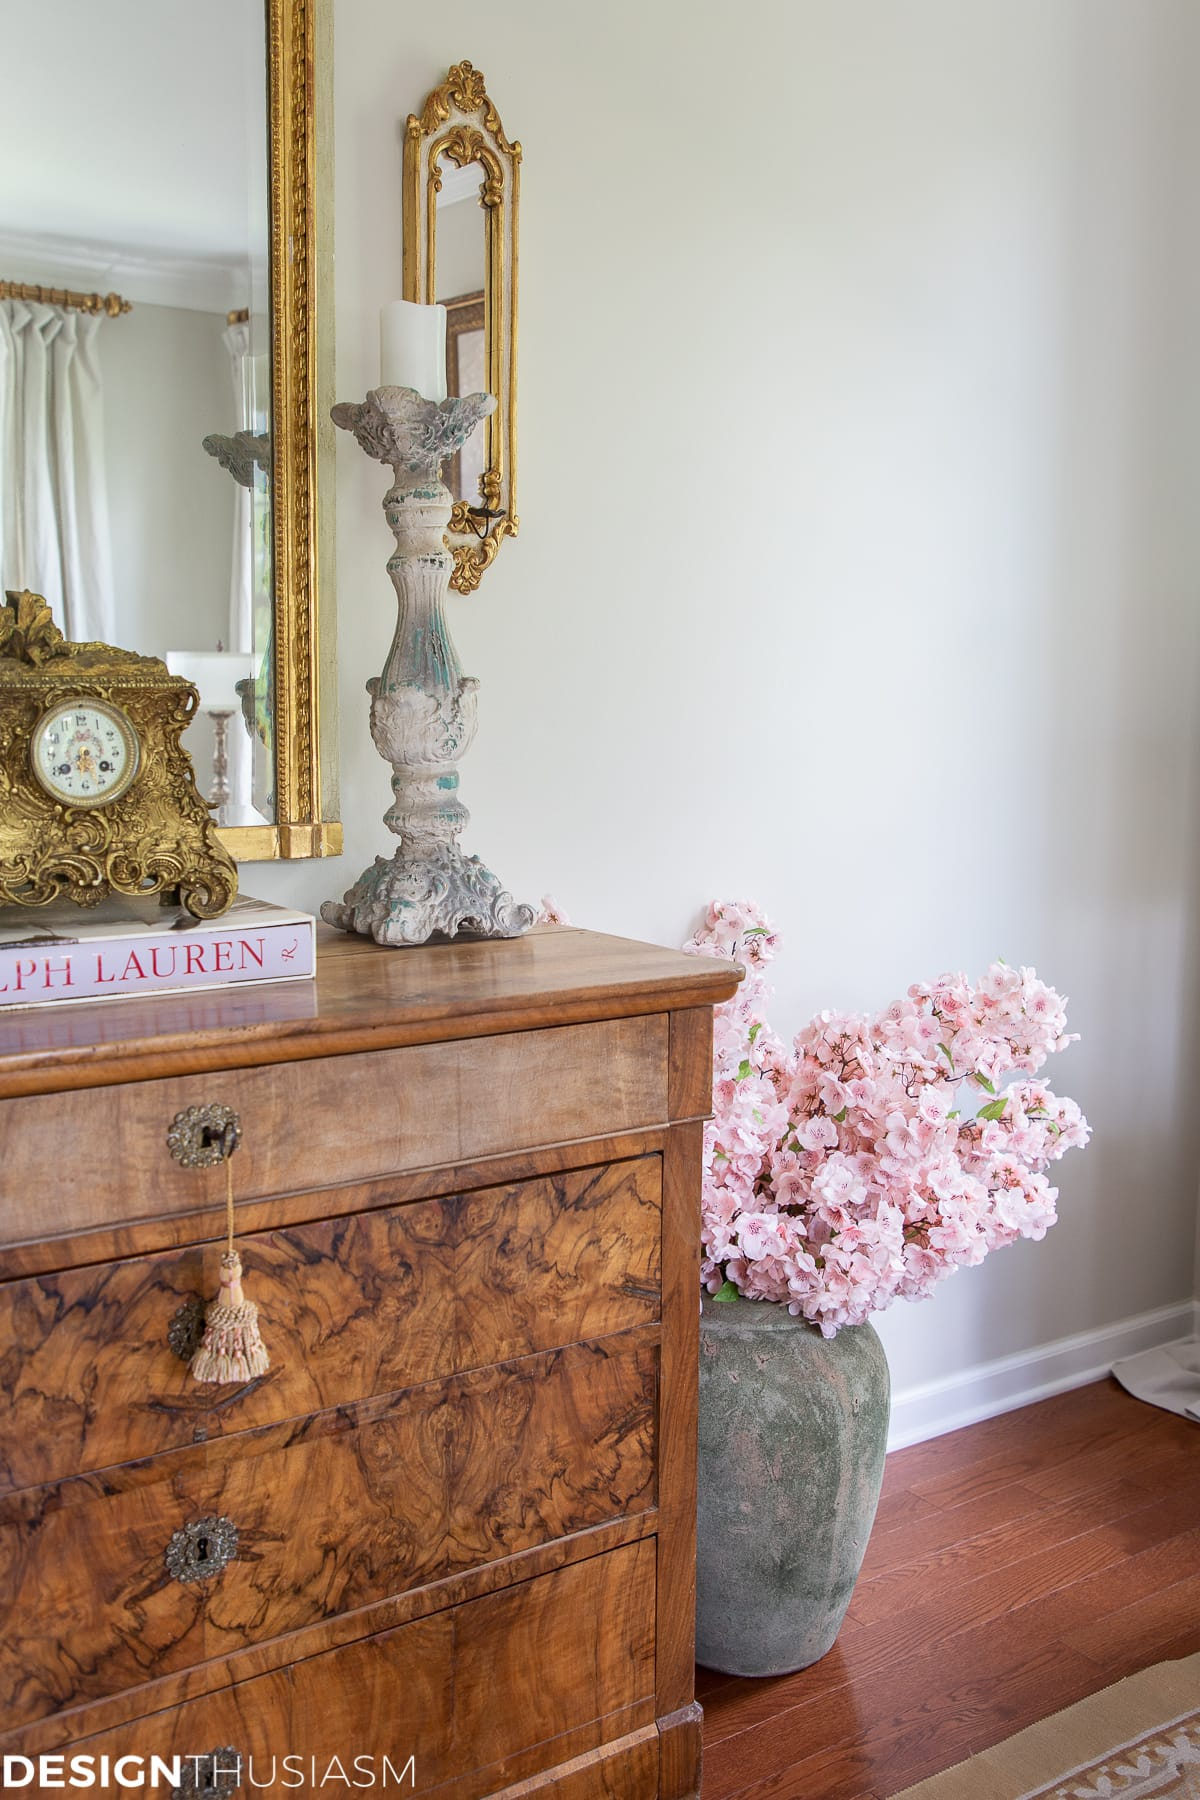 living room decor with cherry blossoms in a vase